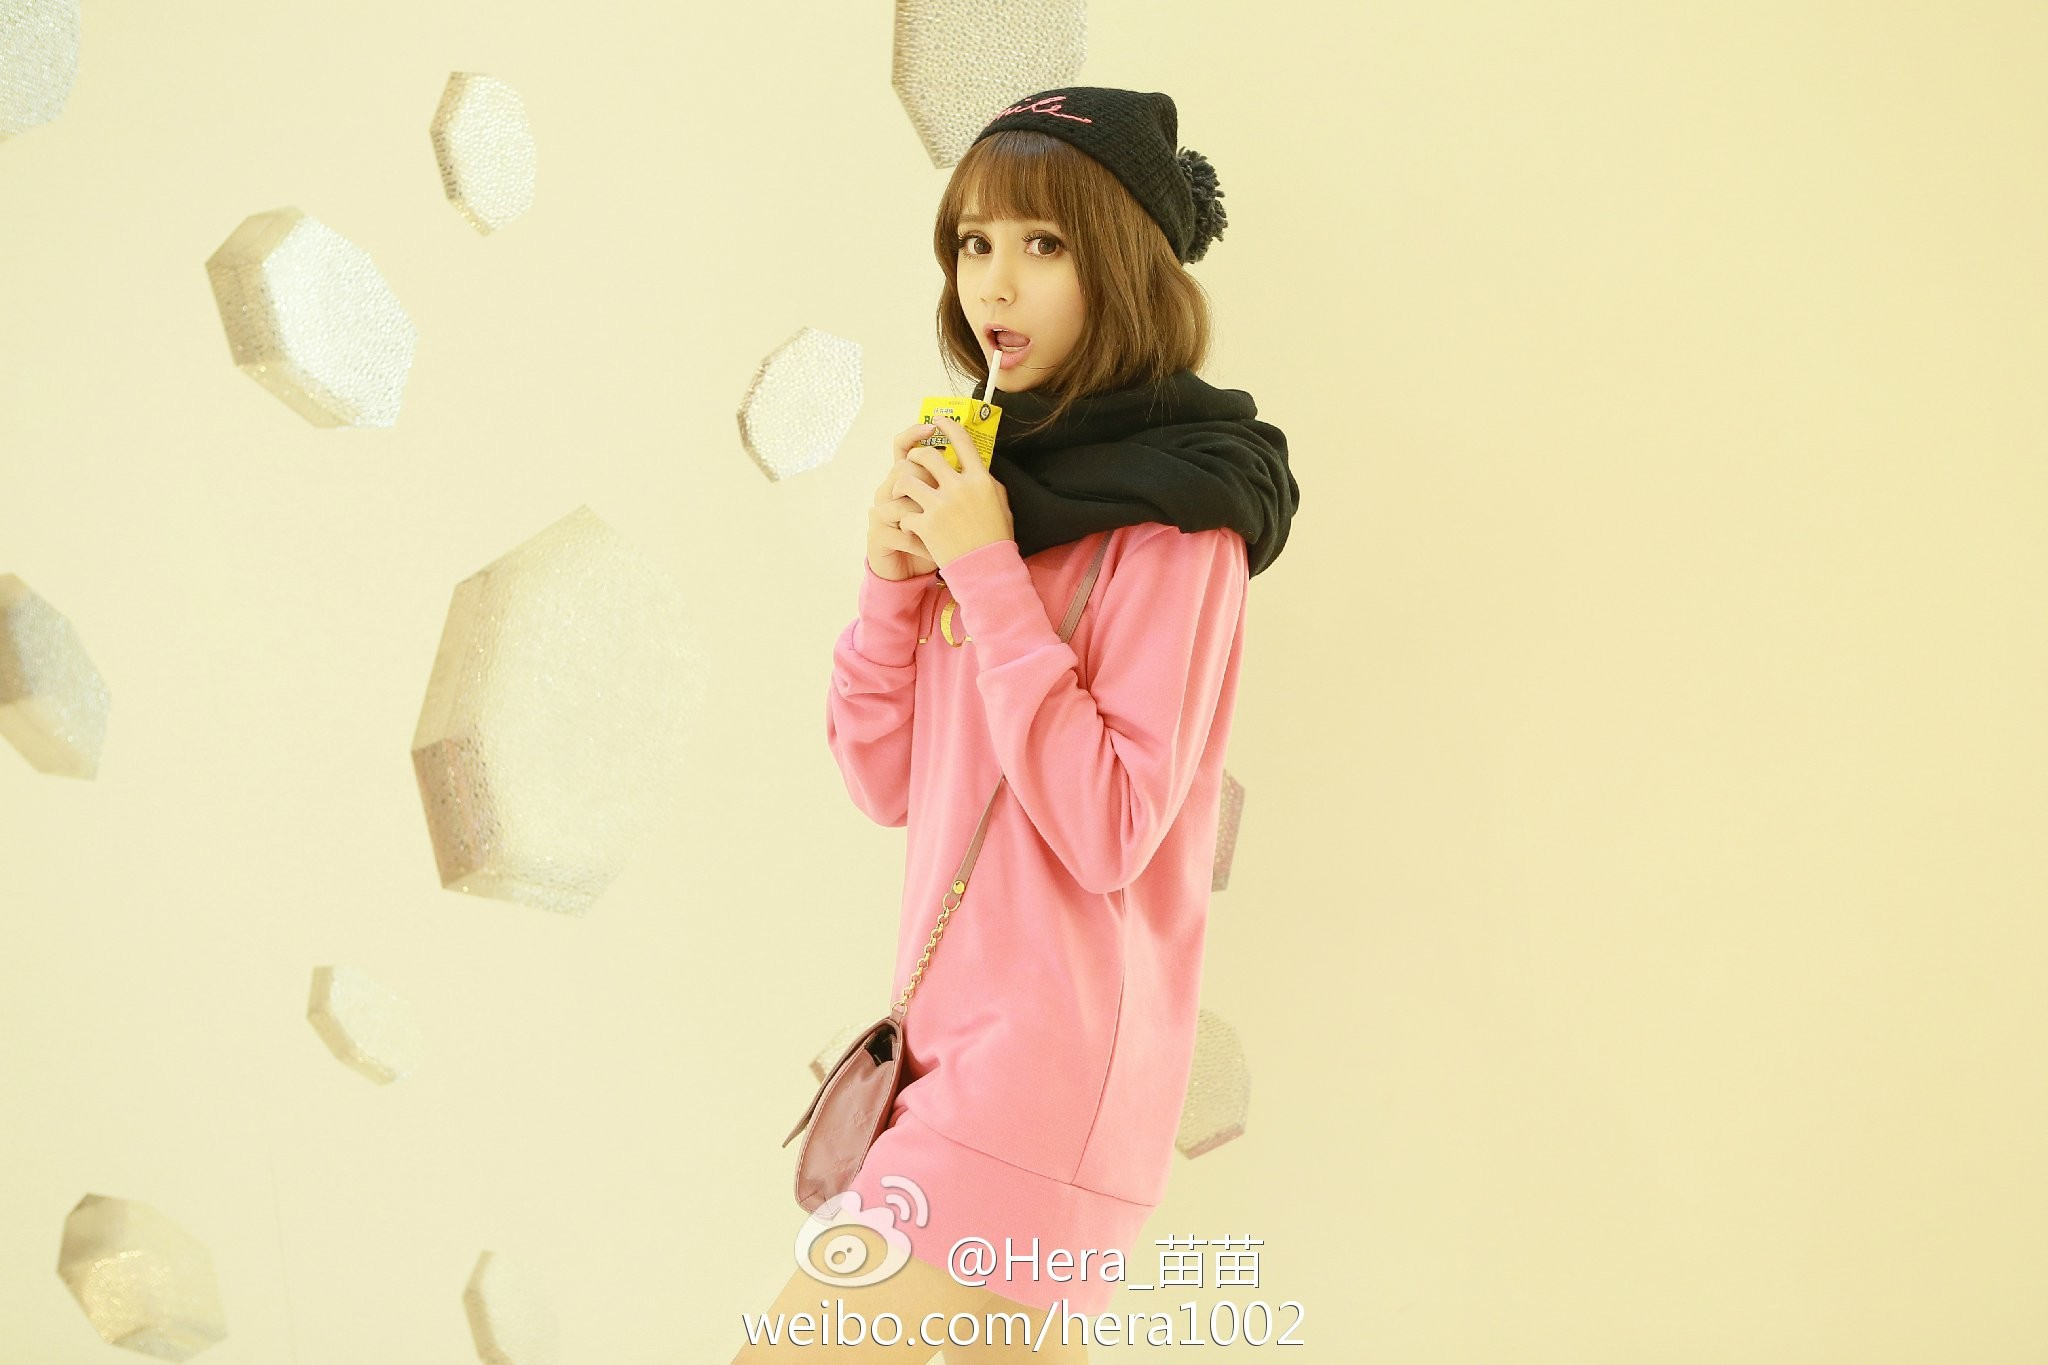 scarf brunette toque open mouth asian bangs women with hats women pink dress drinking straw